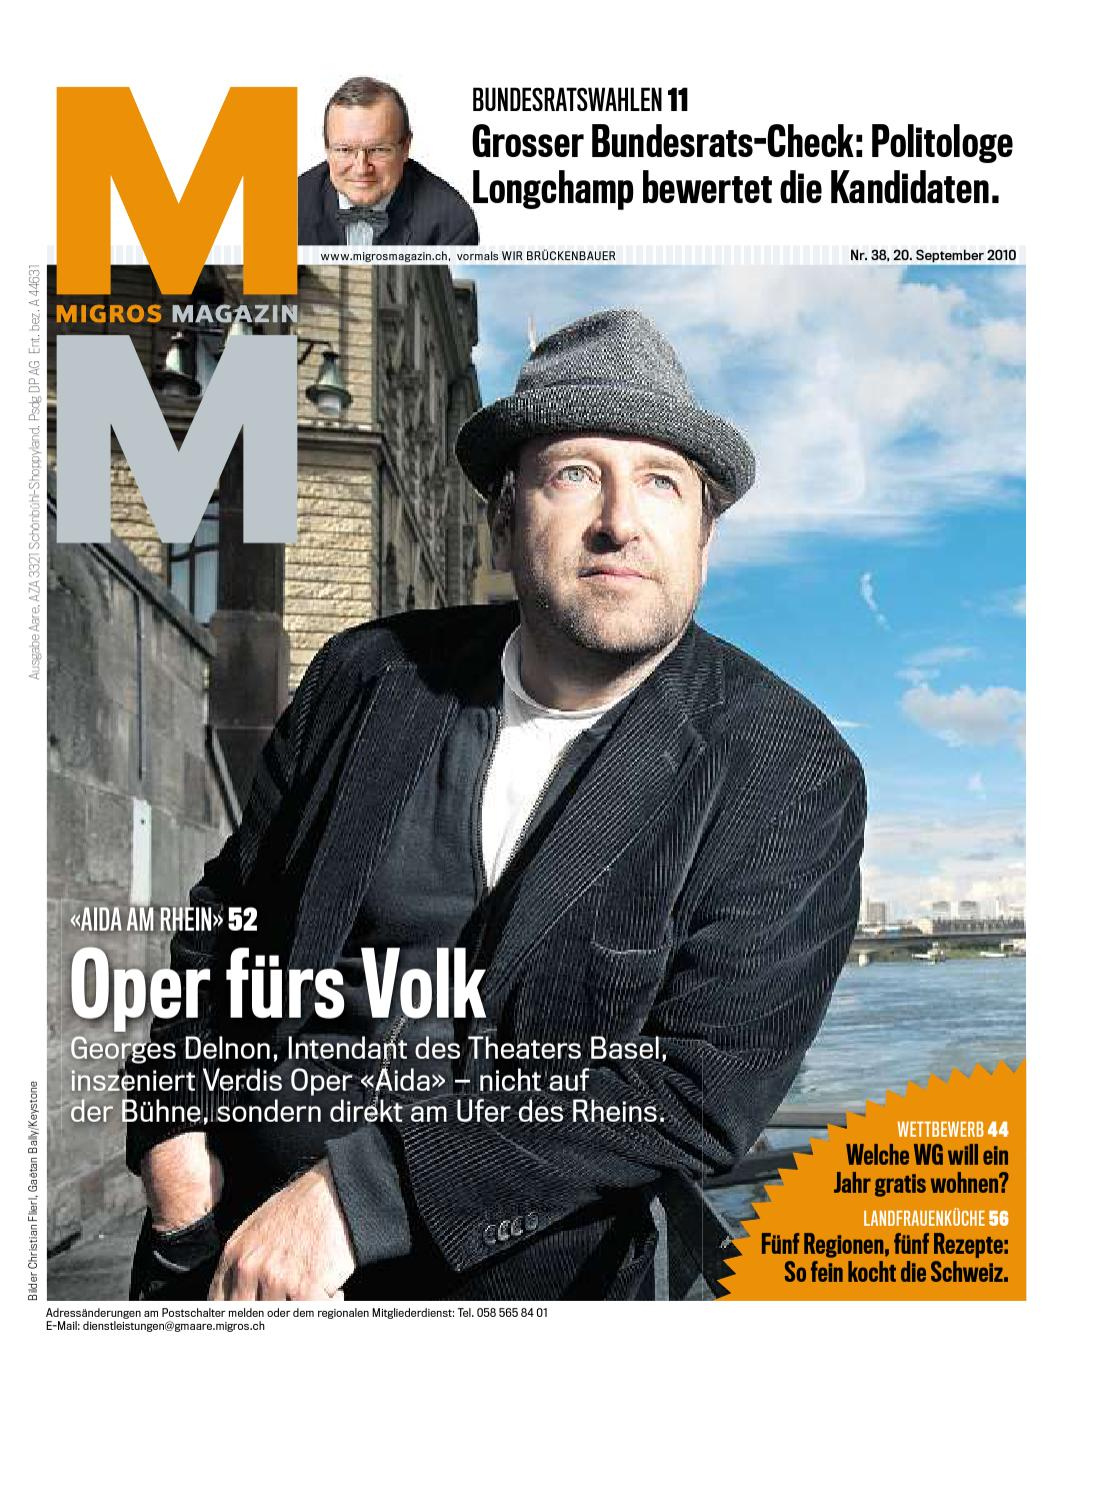 Migros Magazin 38 2010 D Vs By Migros Genossenschafts Bund Issuu